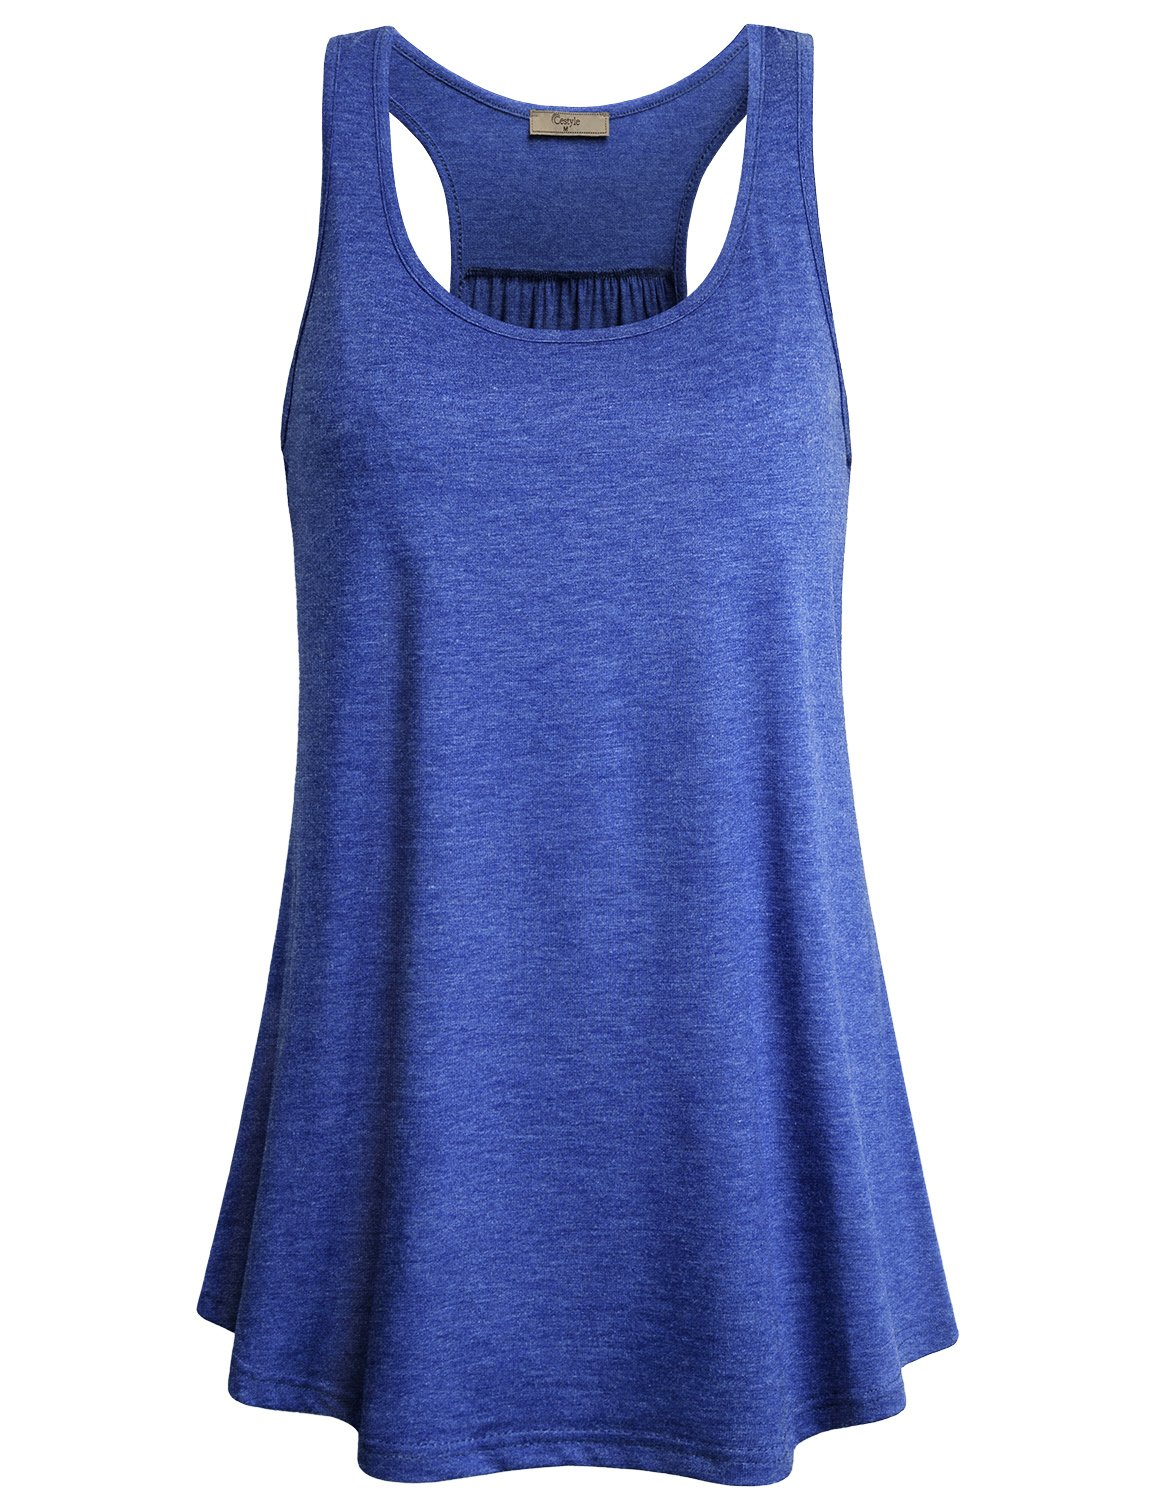 Cestyle Athletic Tank Tops for Women Loose Fit, Girls Scoop Neck Summer Flows Hem Tunic Tee Workout Racerback Tanks Casual Form Fitting Sleeveless Shirts Going Out Clothing Blue X-Large